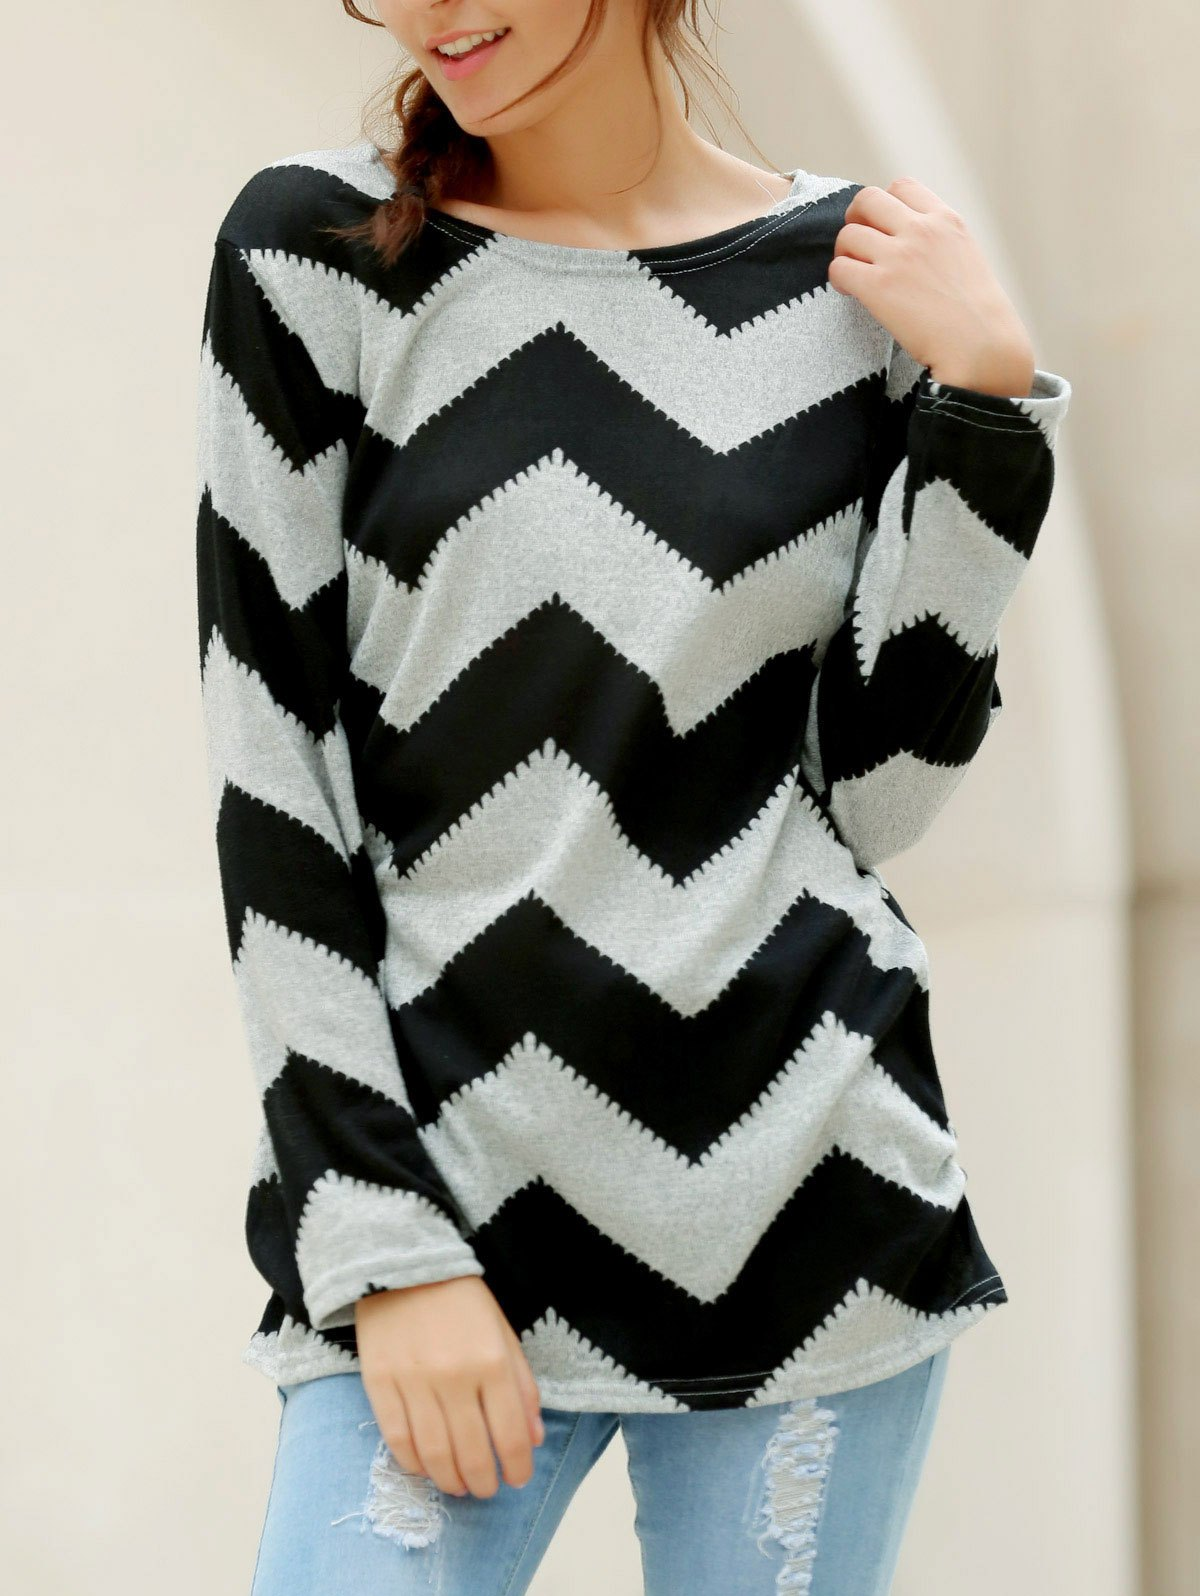 Wavy Line Print Long Sleeve Round Neck Color Block Plus Size T-Shirt - GARY/BLACK L